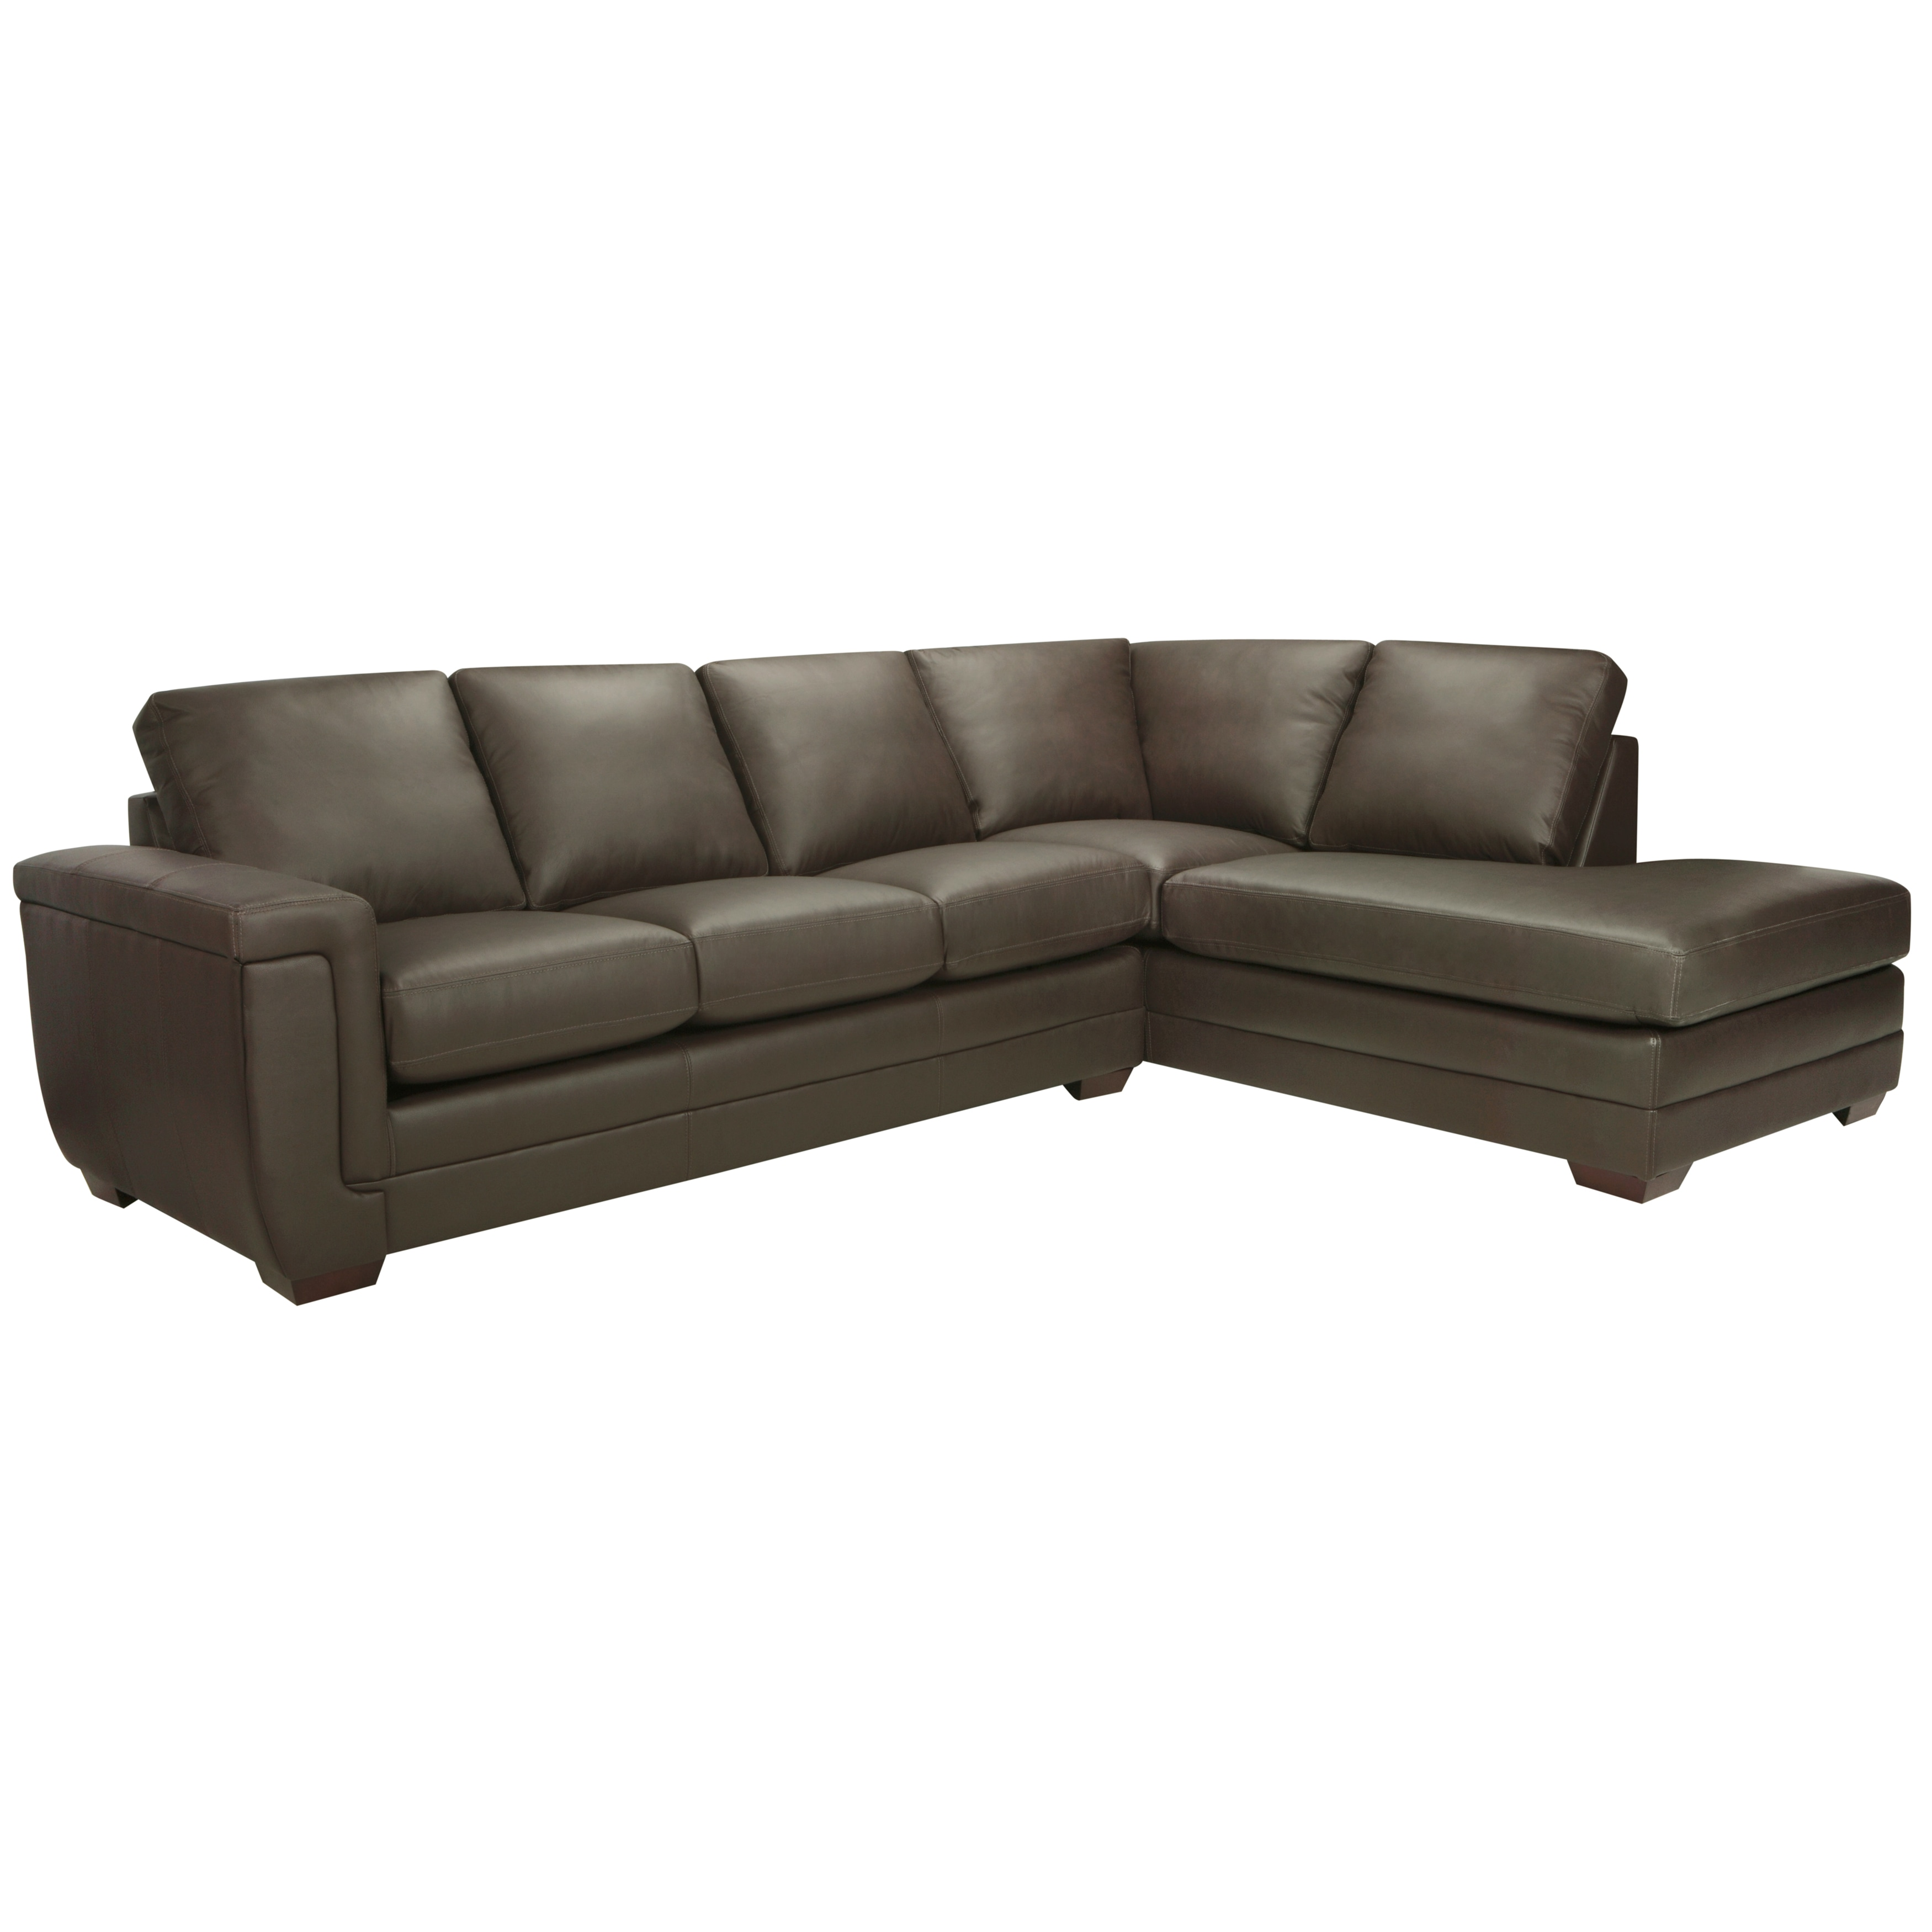 Ashley Furniture Reclining Living Room Set 2017 2018